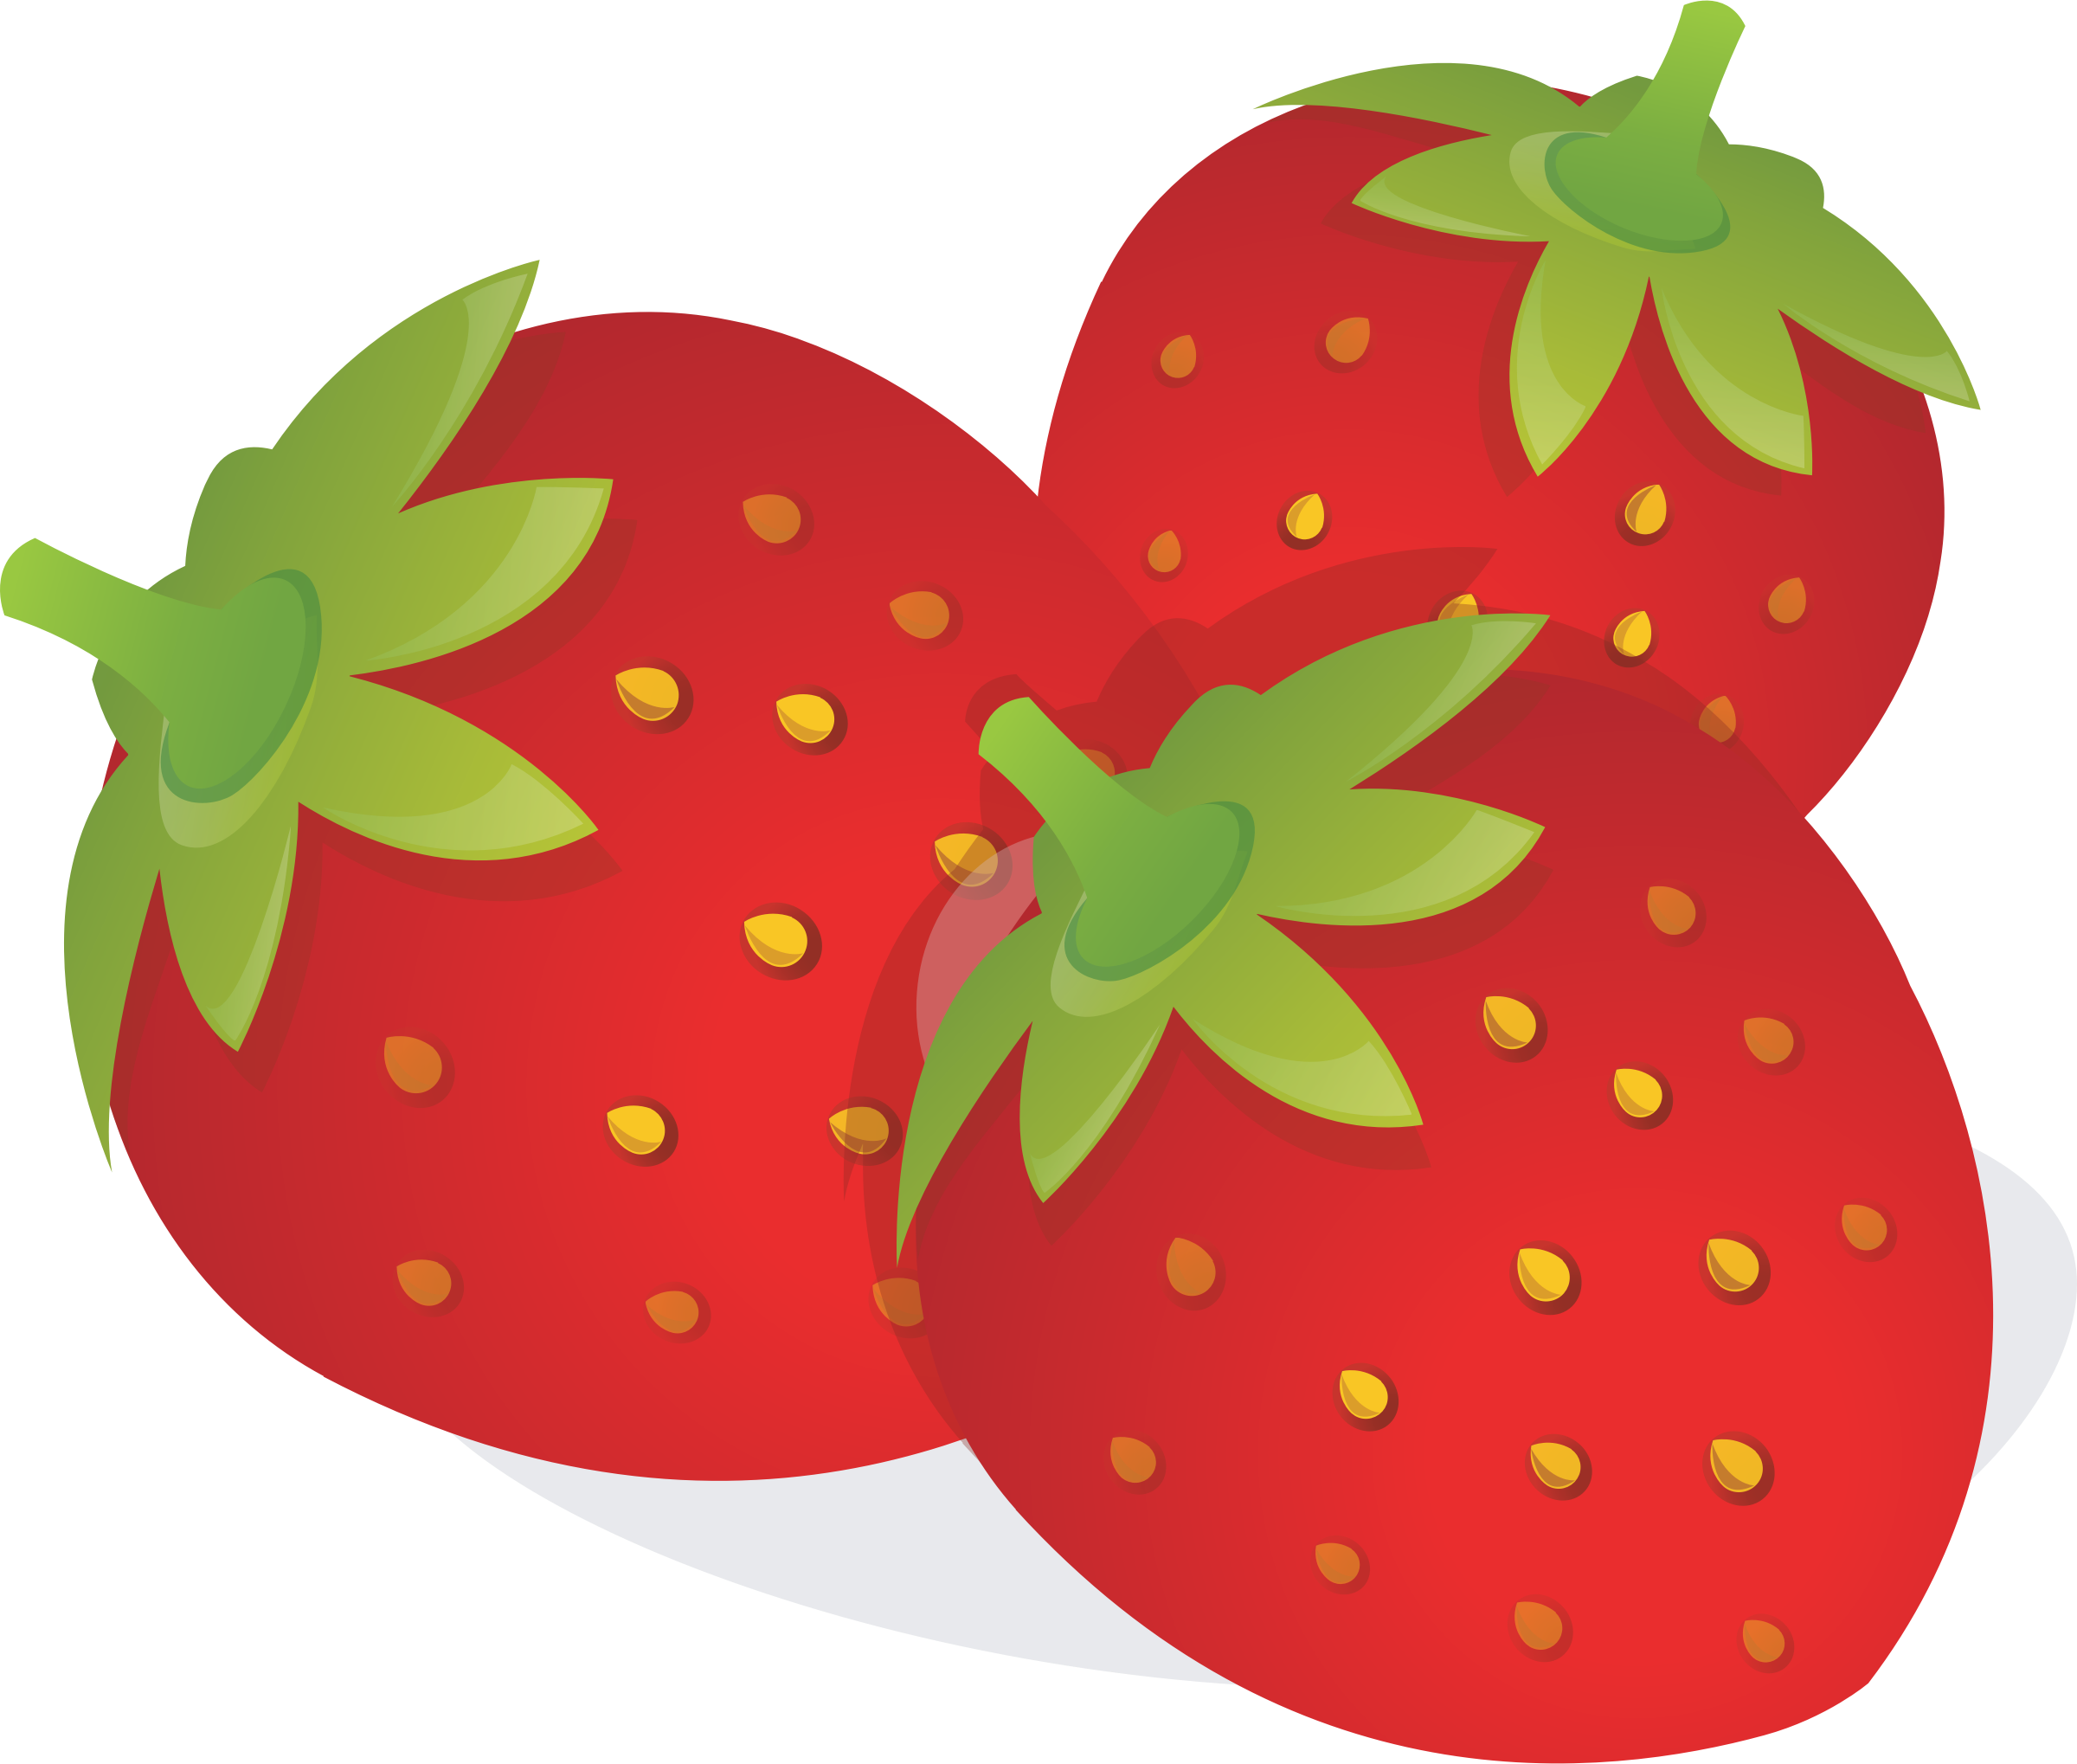 Clipart strawberrys banner download Clipart strawberries - Clipartable.com banner download